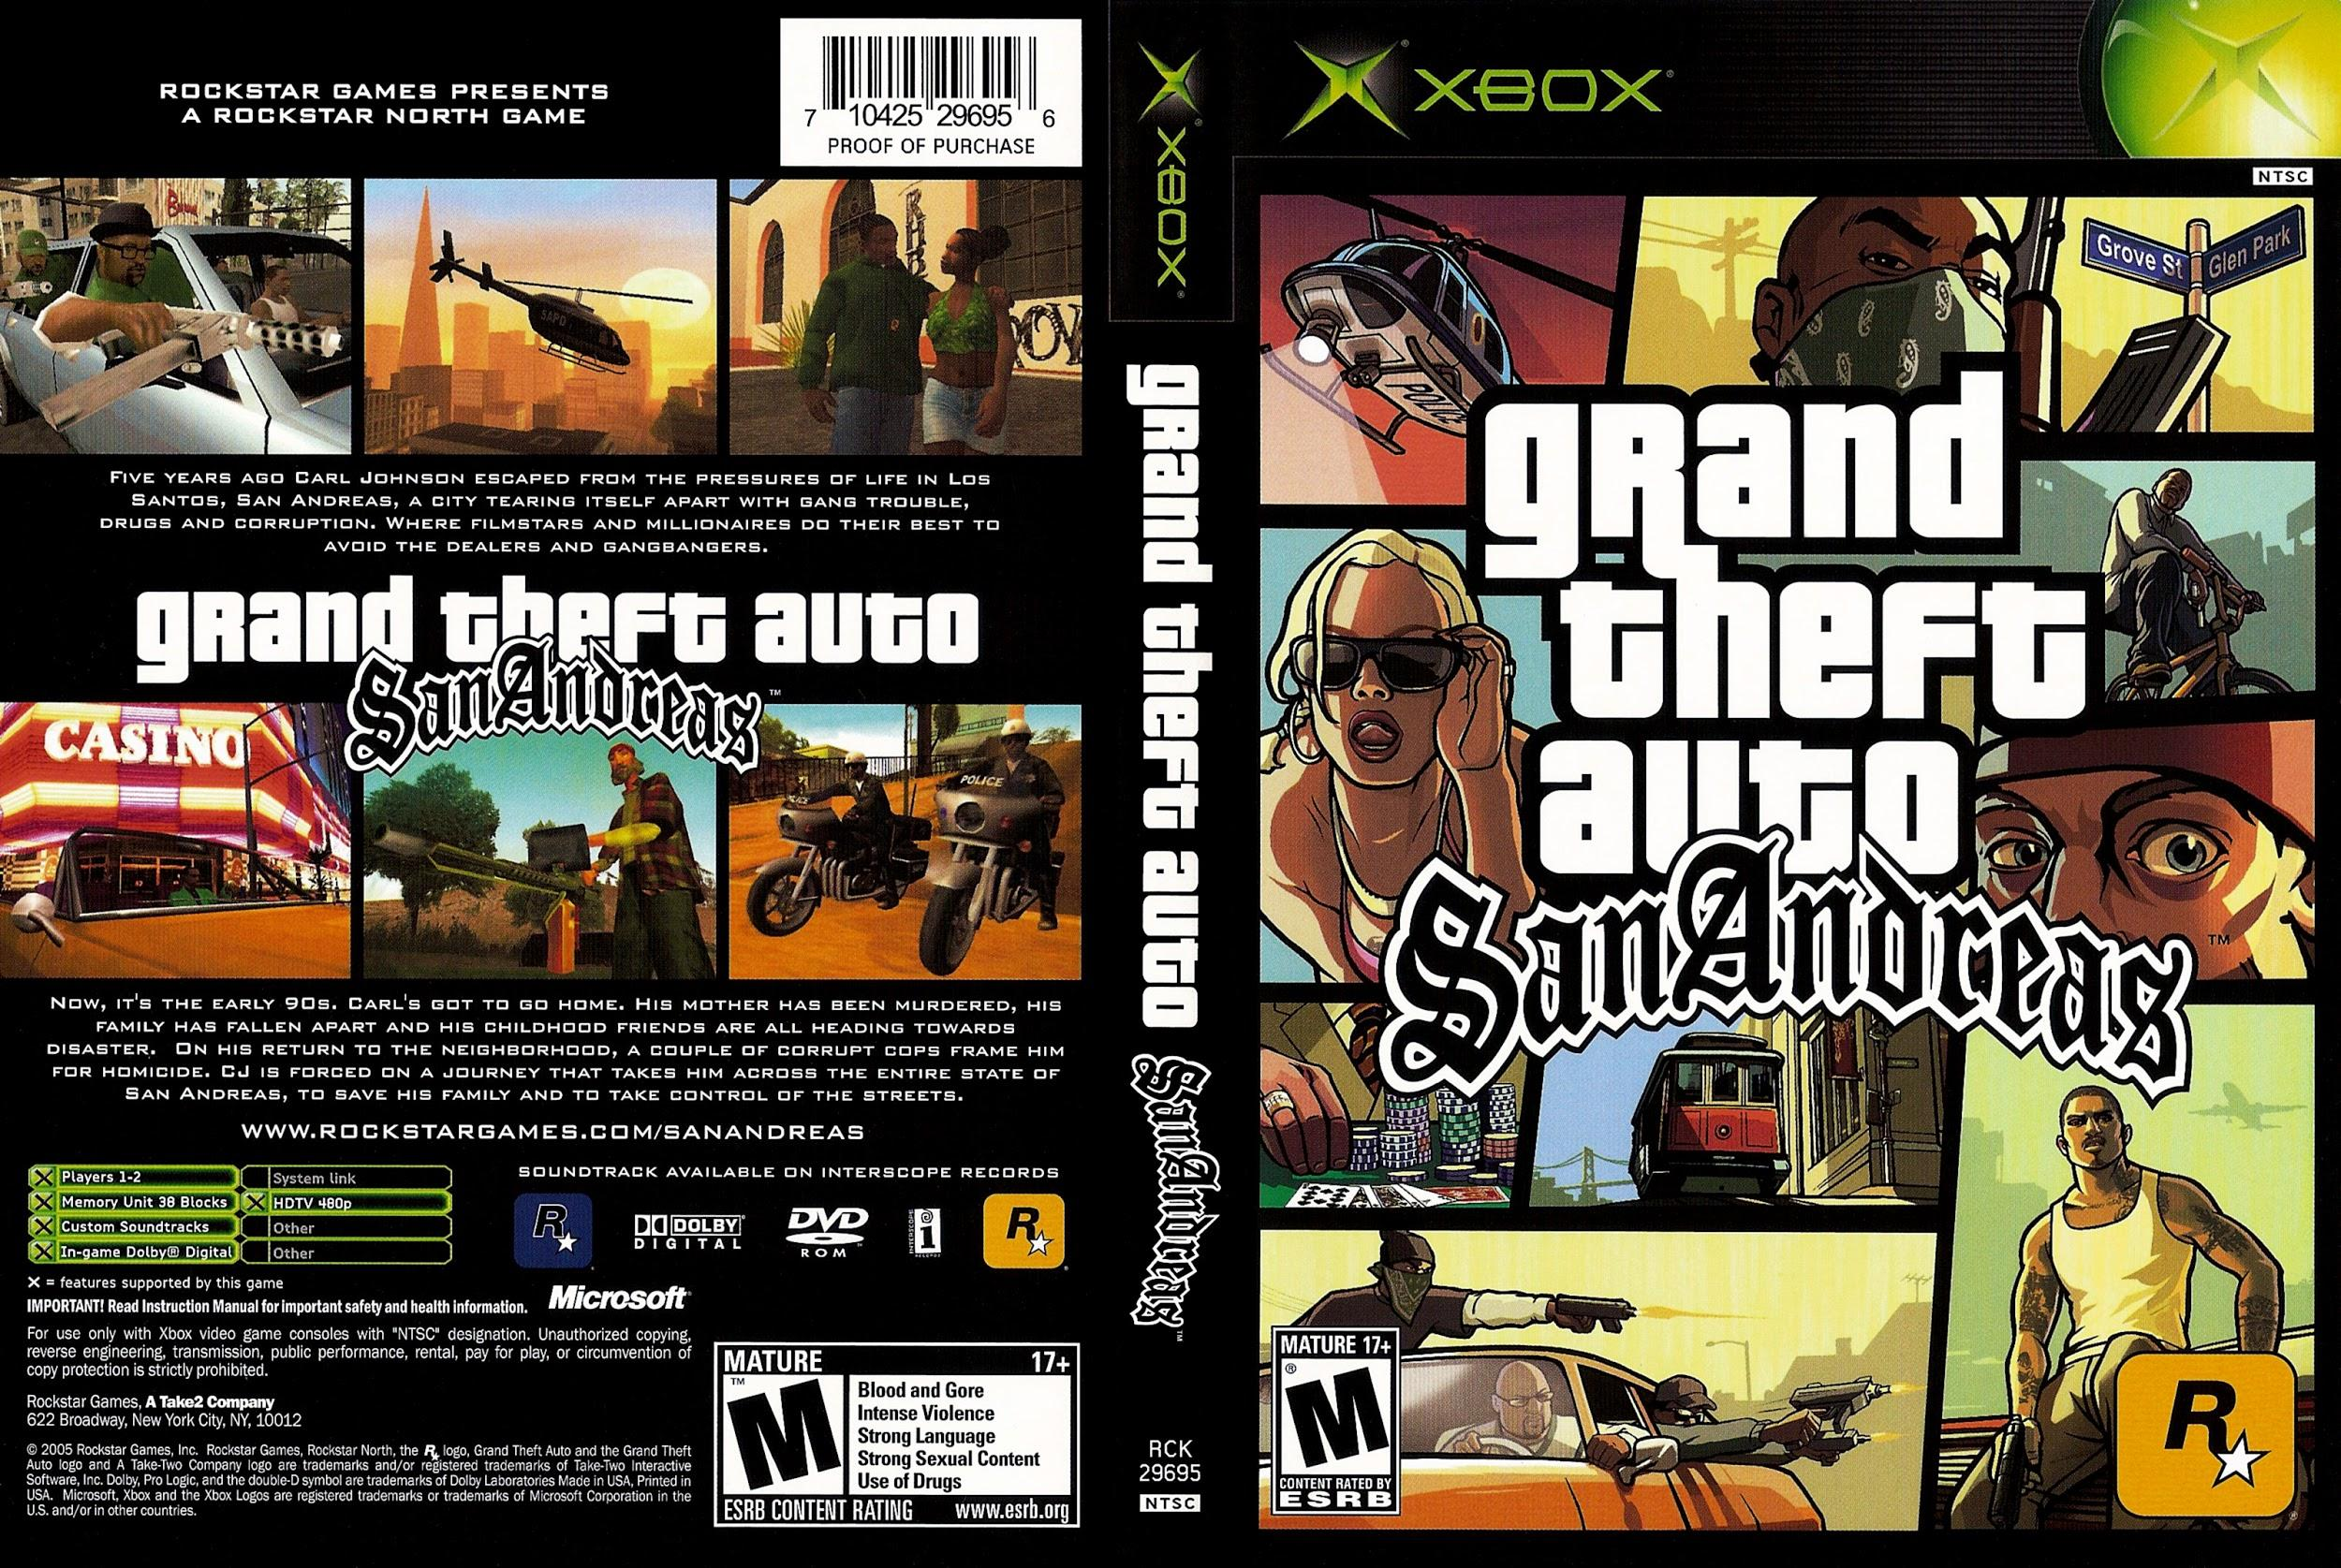 Download Game Ppsspp Gta 5 Lite - pdfluxury's blog